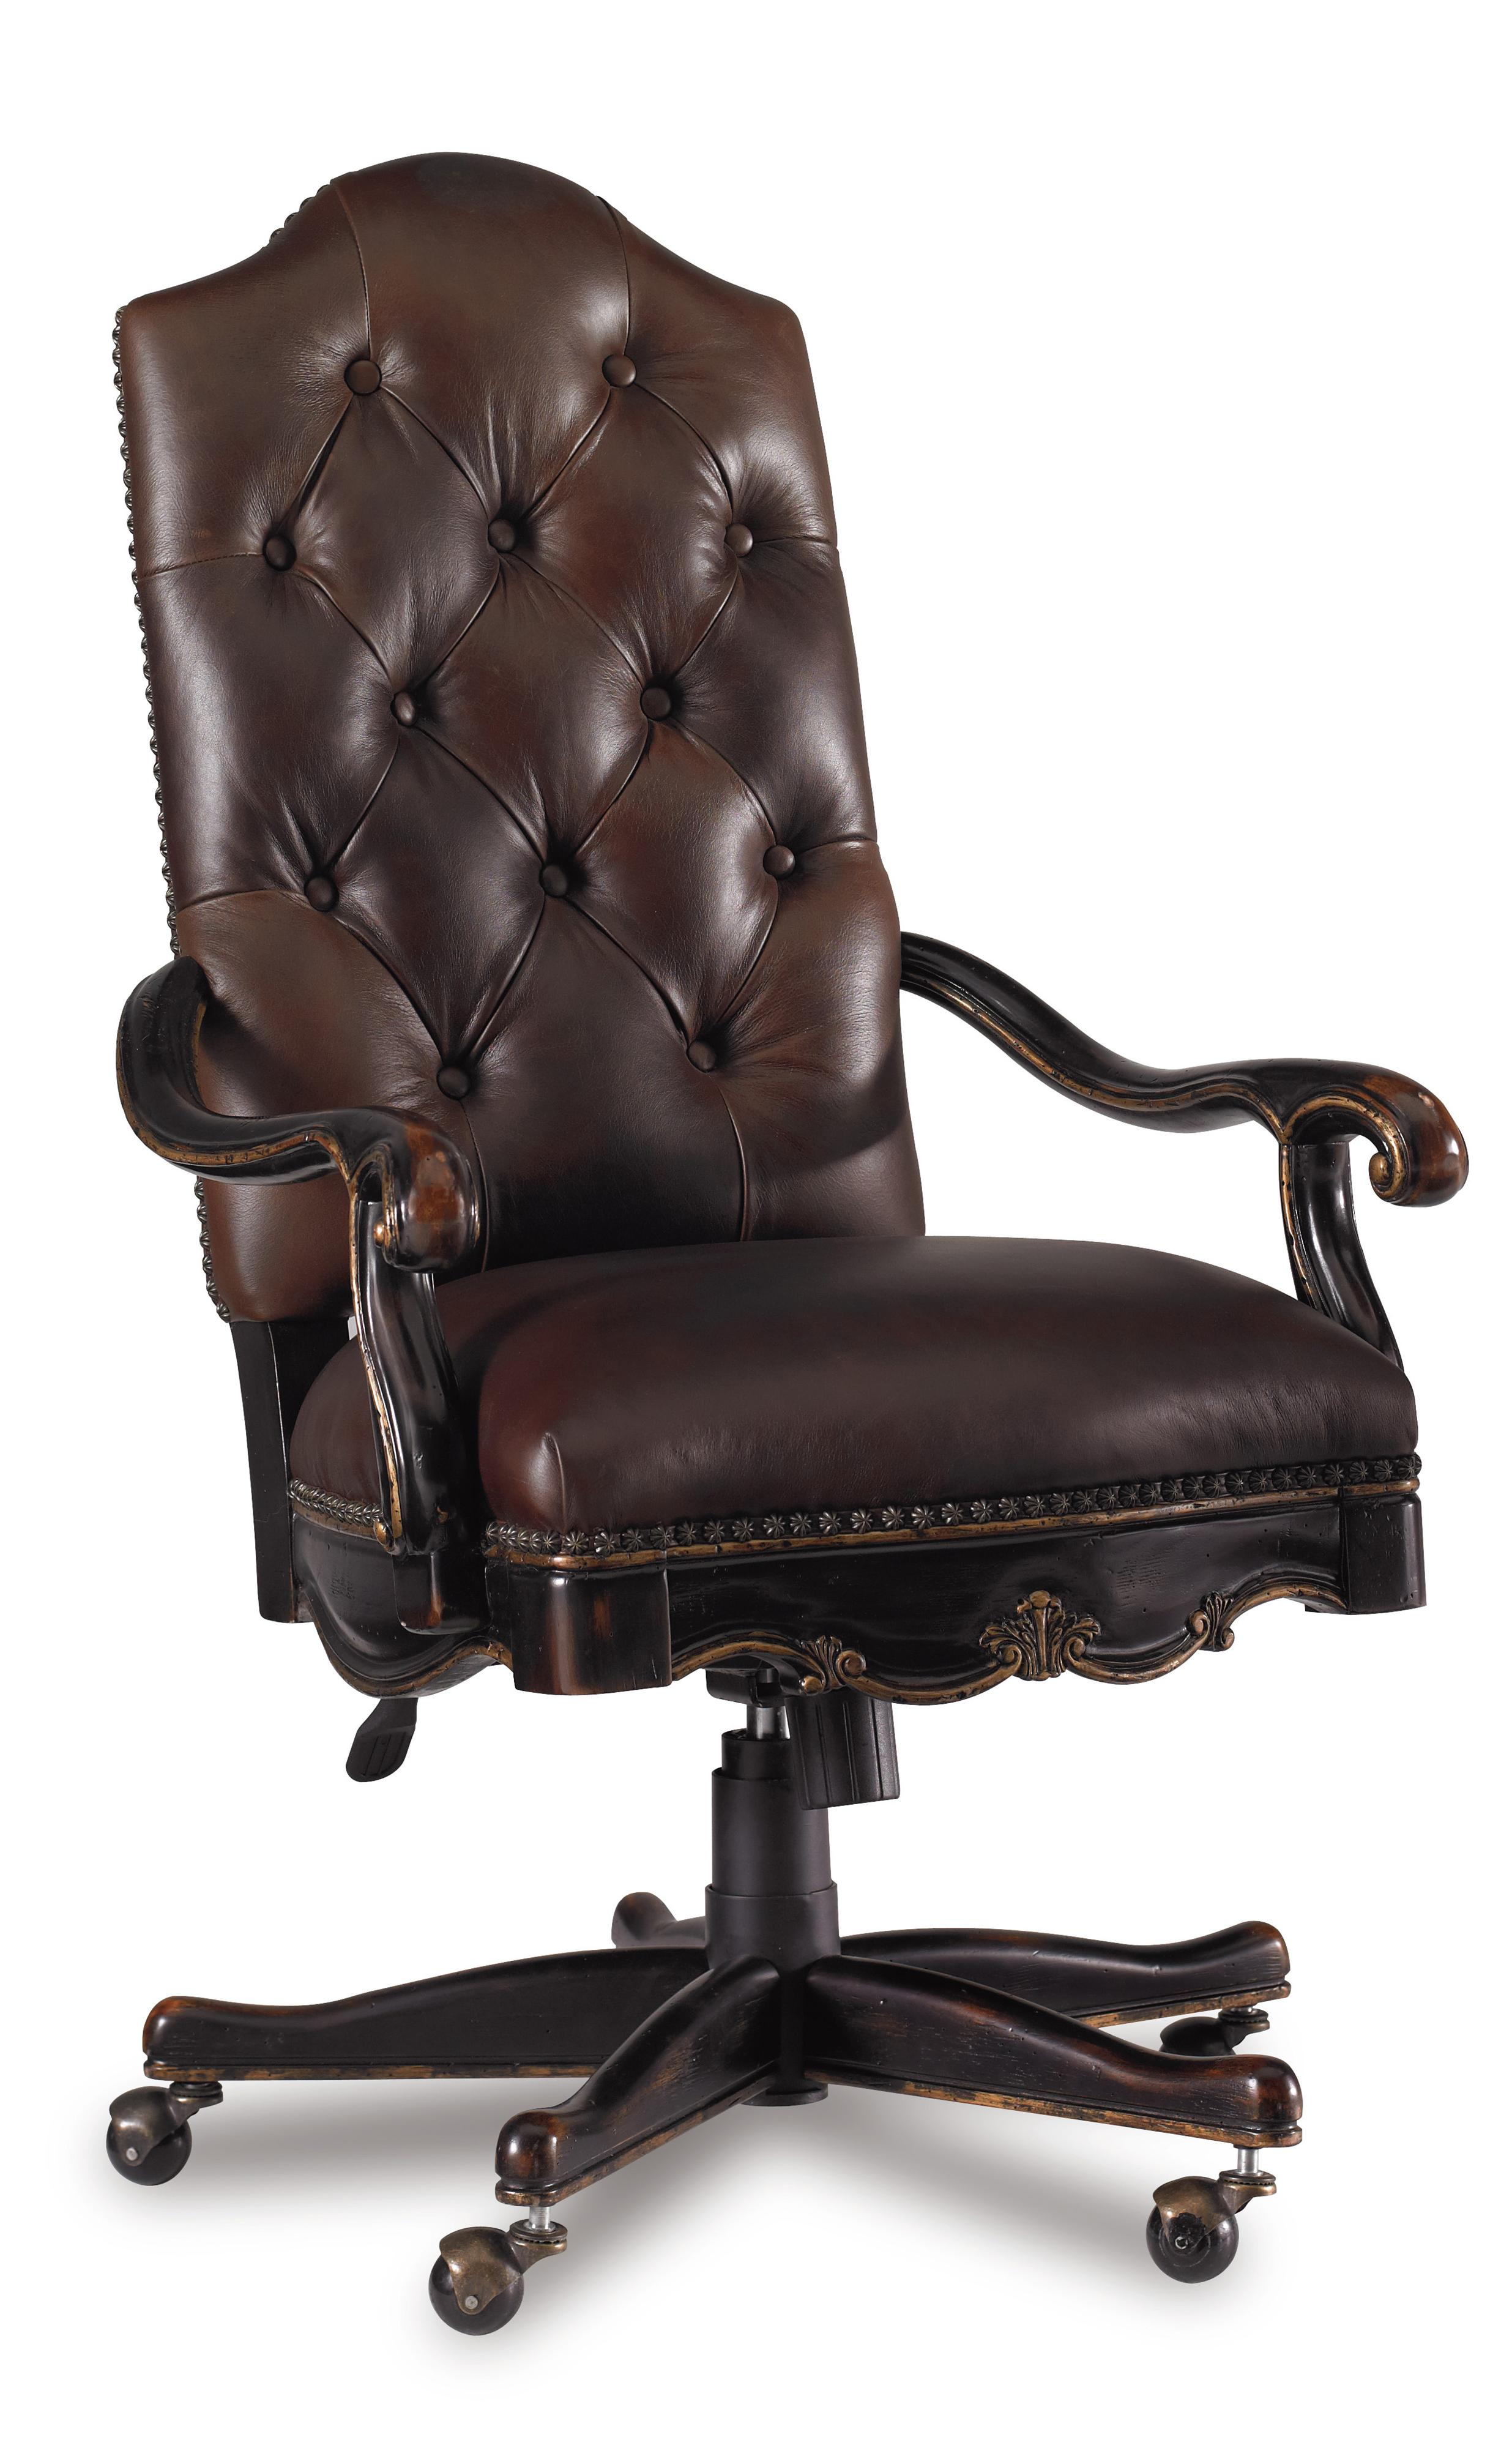 Hooker Furniture Grandover Tufted Leather Executive Office